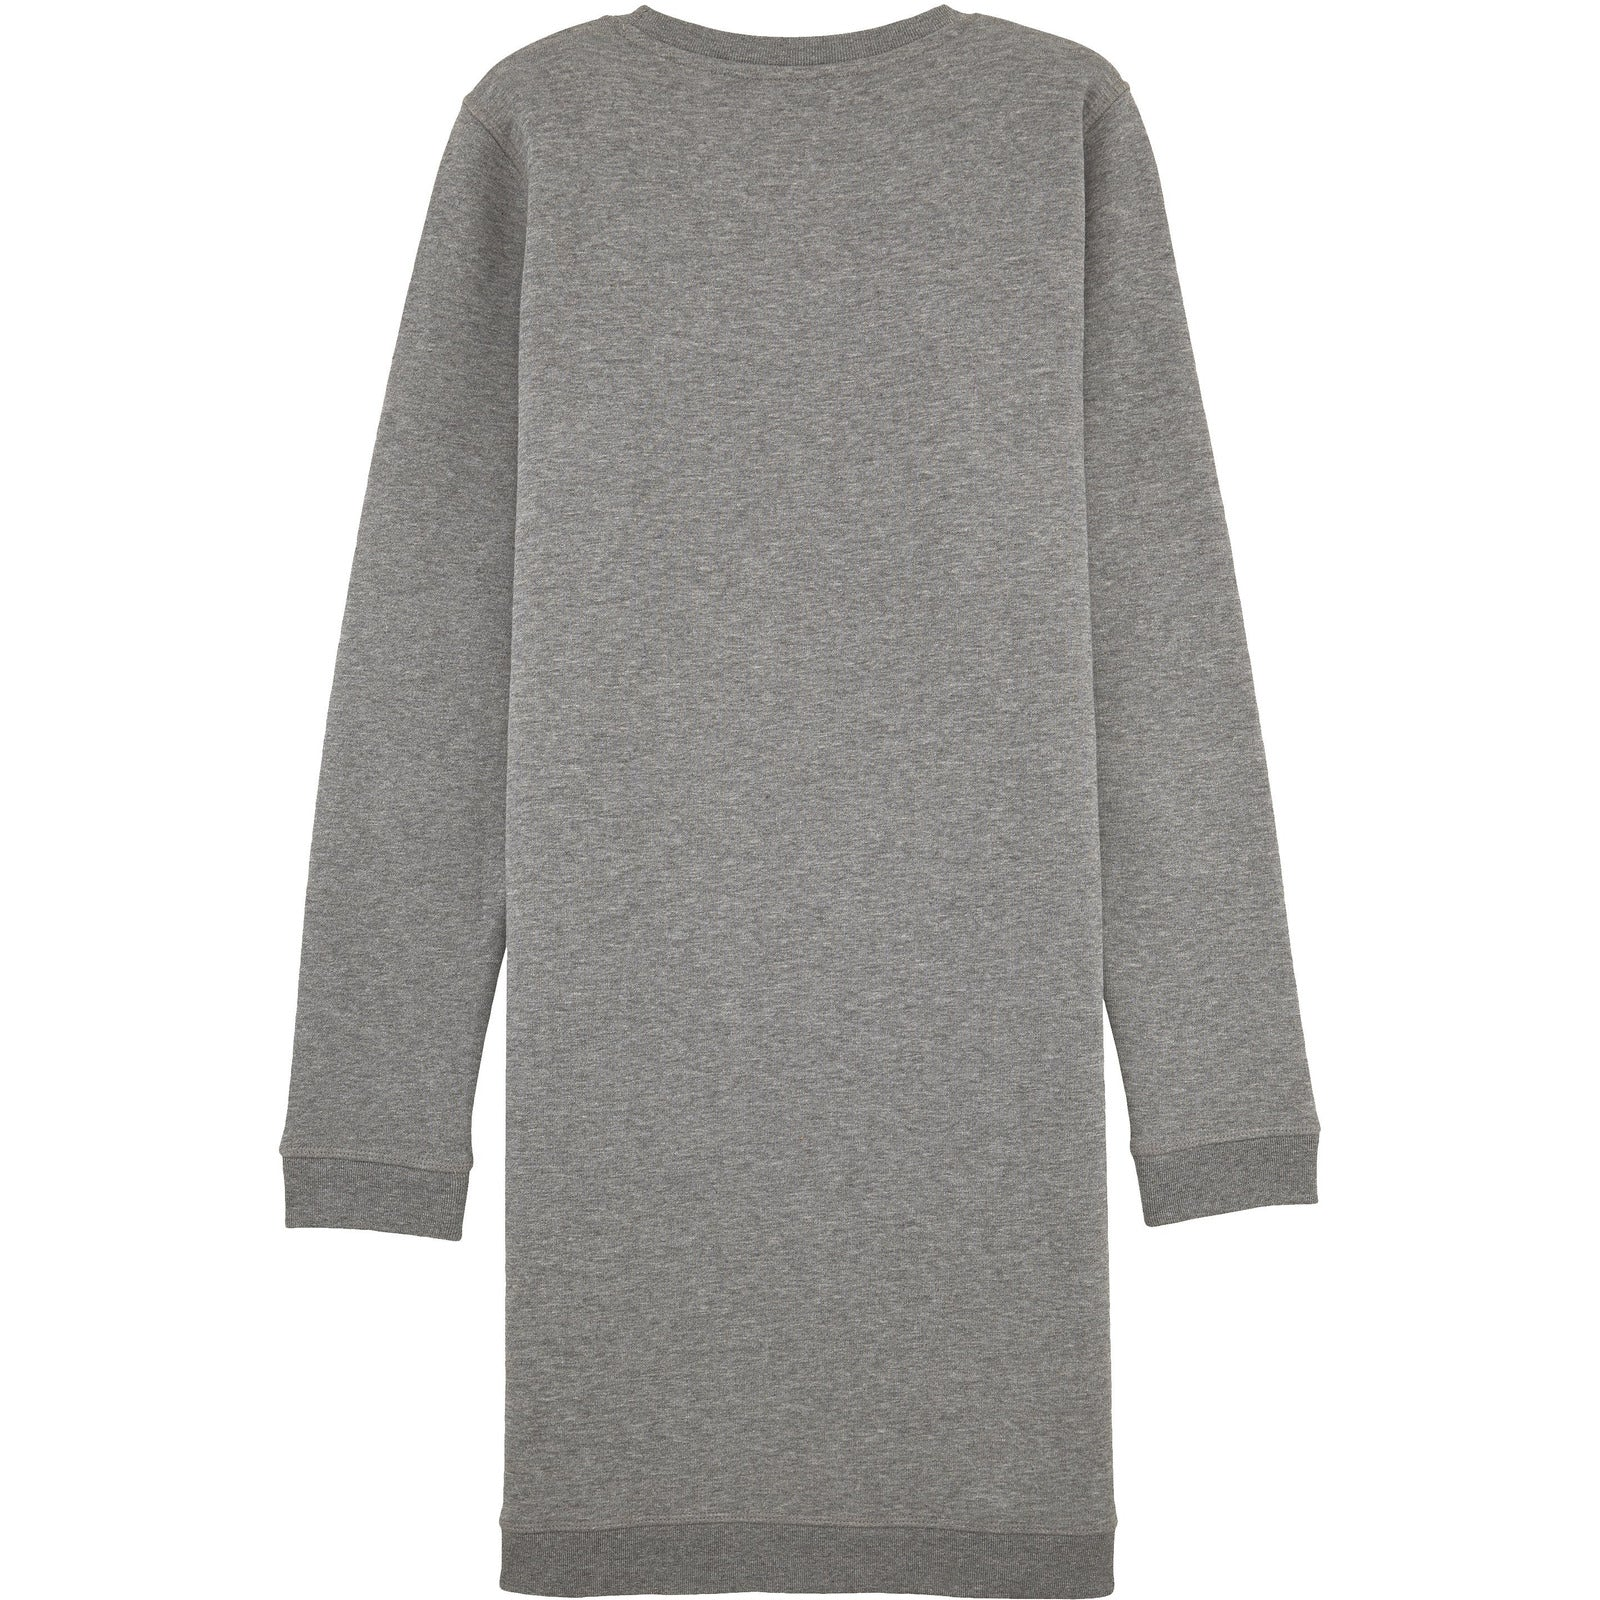 Sweatshirtkleid - Hanseat